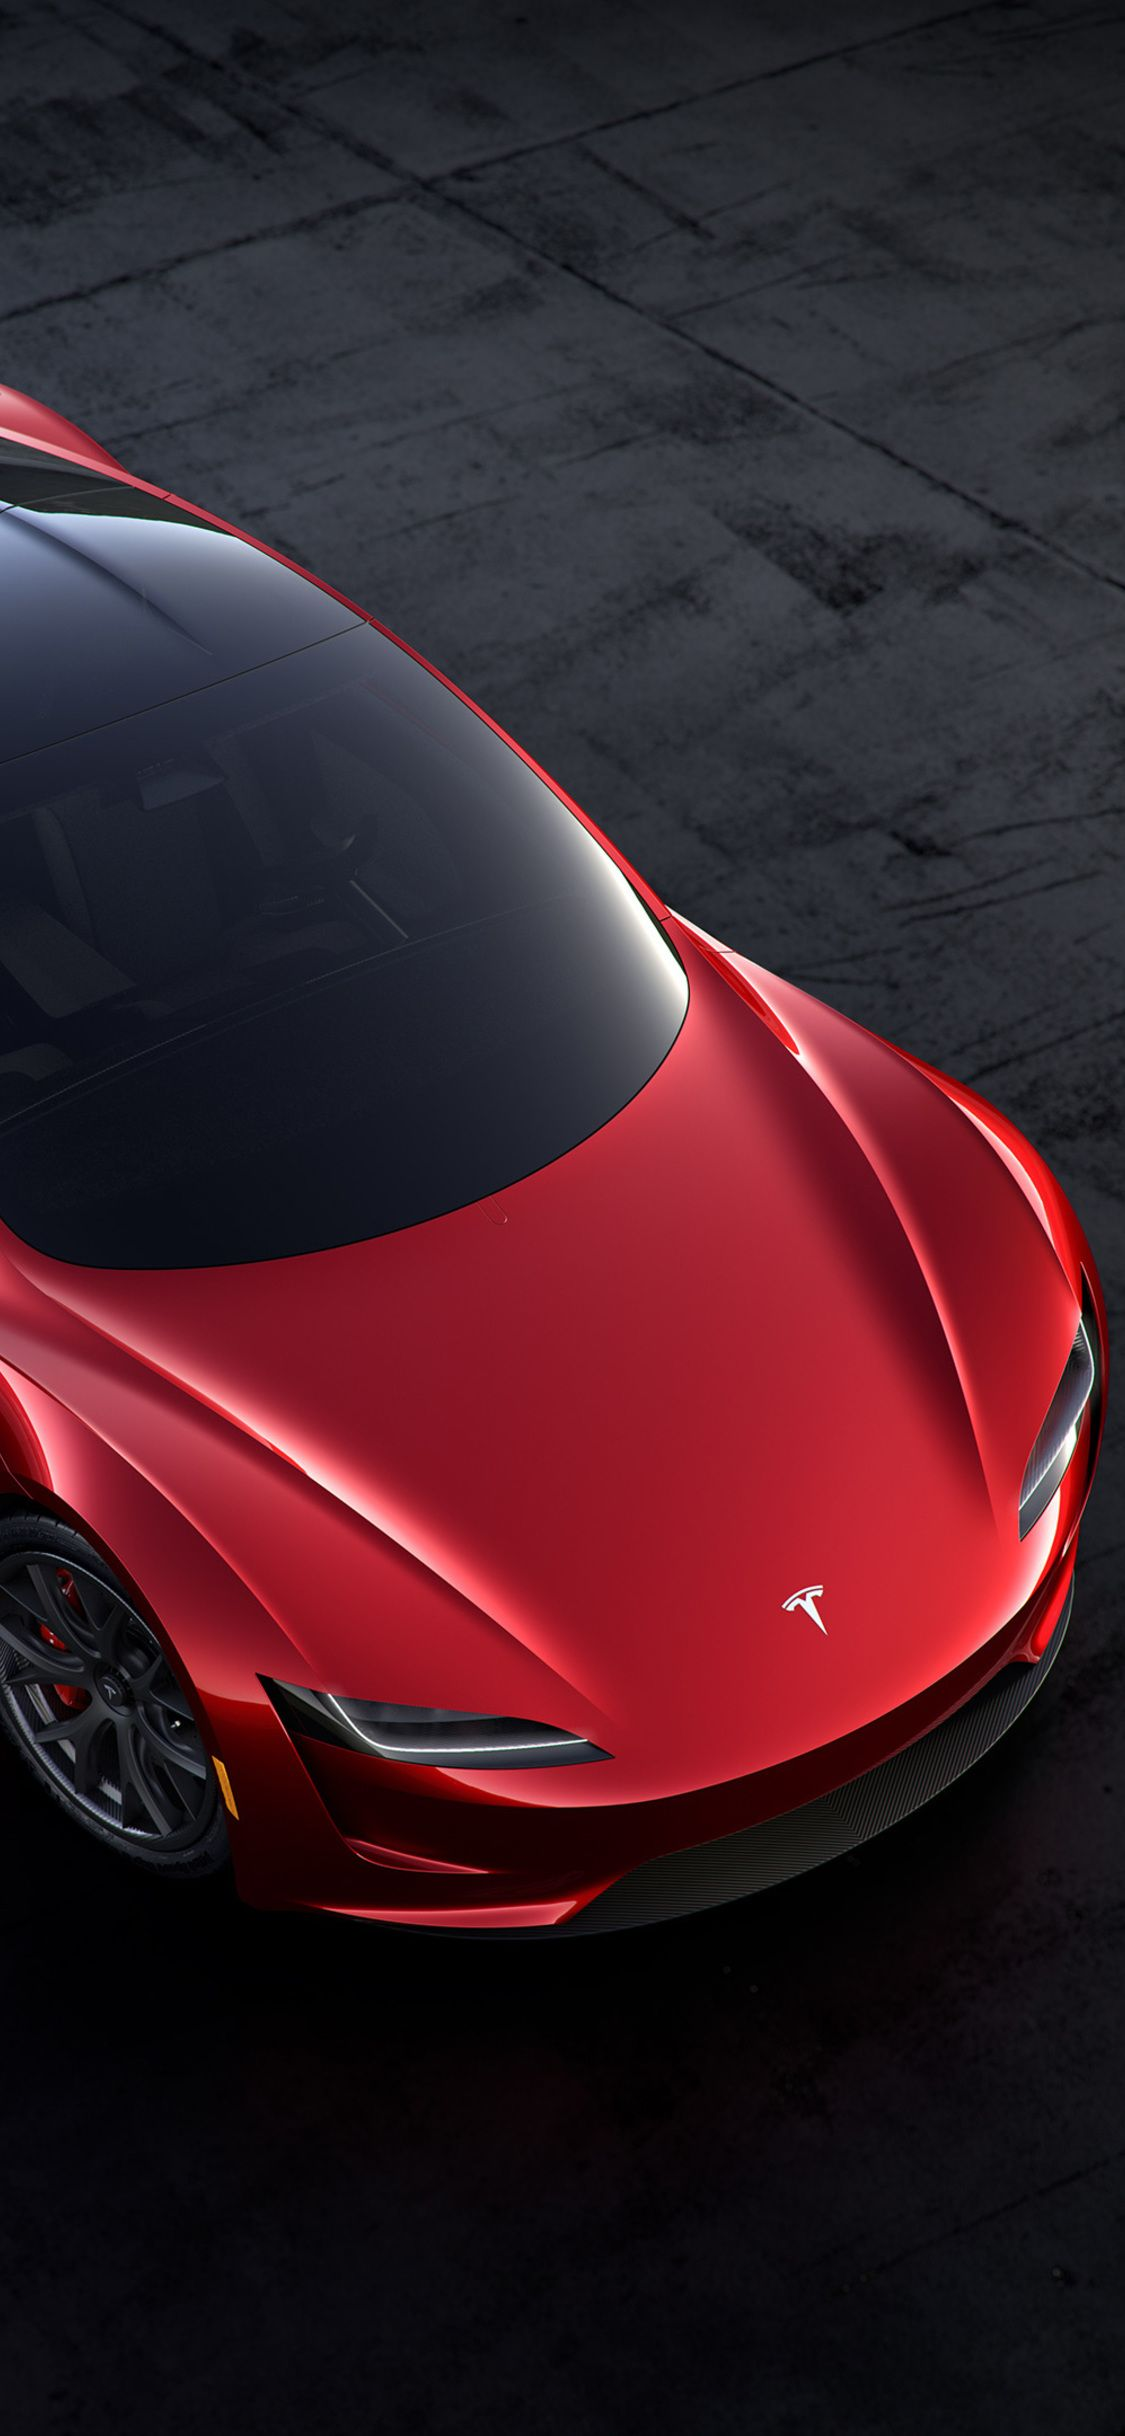 1125x2436 1125x2436 Tesla Roadster 2018 Iphone X,Iphone 10 HD 4k Wallpapers ...